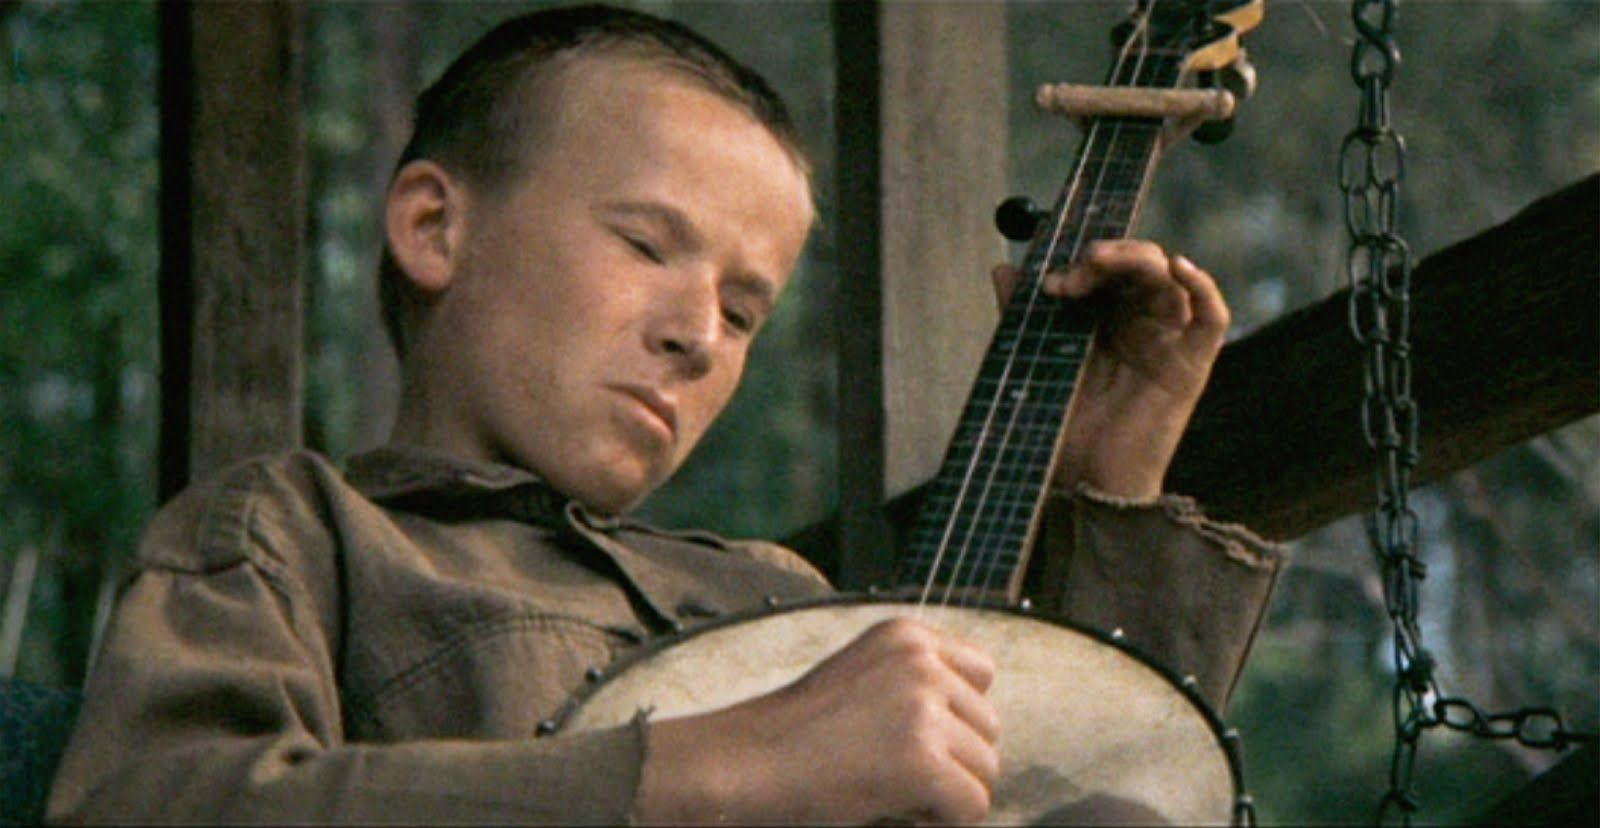 Arkansaspiper, October 4th is YOUR SPECIAL DAY!!!  Deliverance-banjo